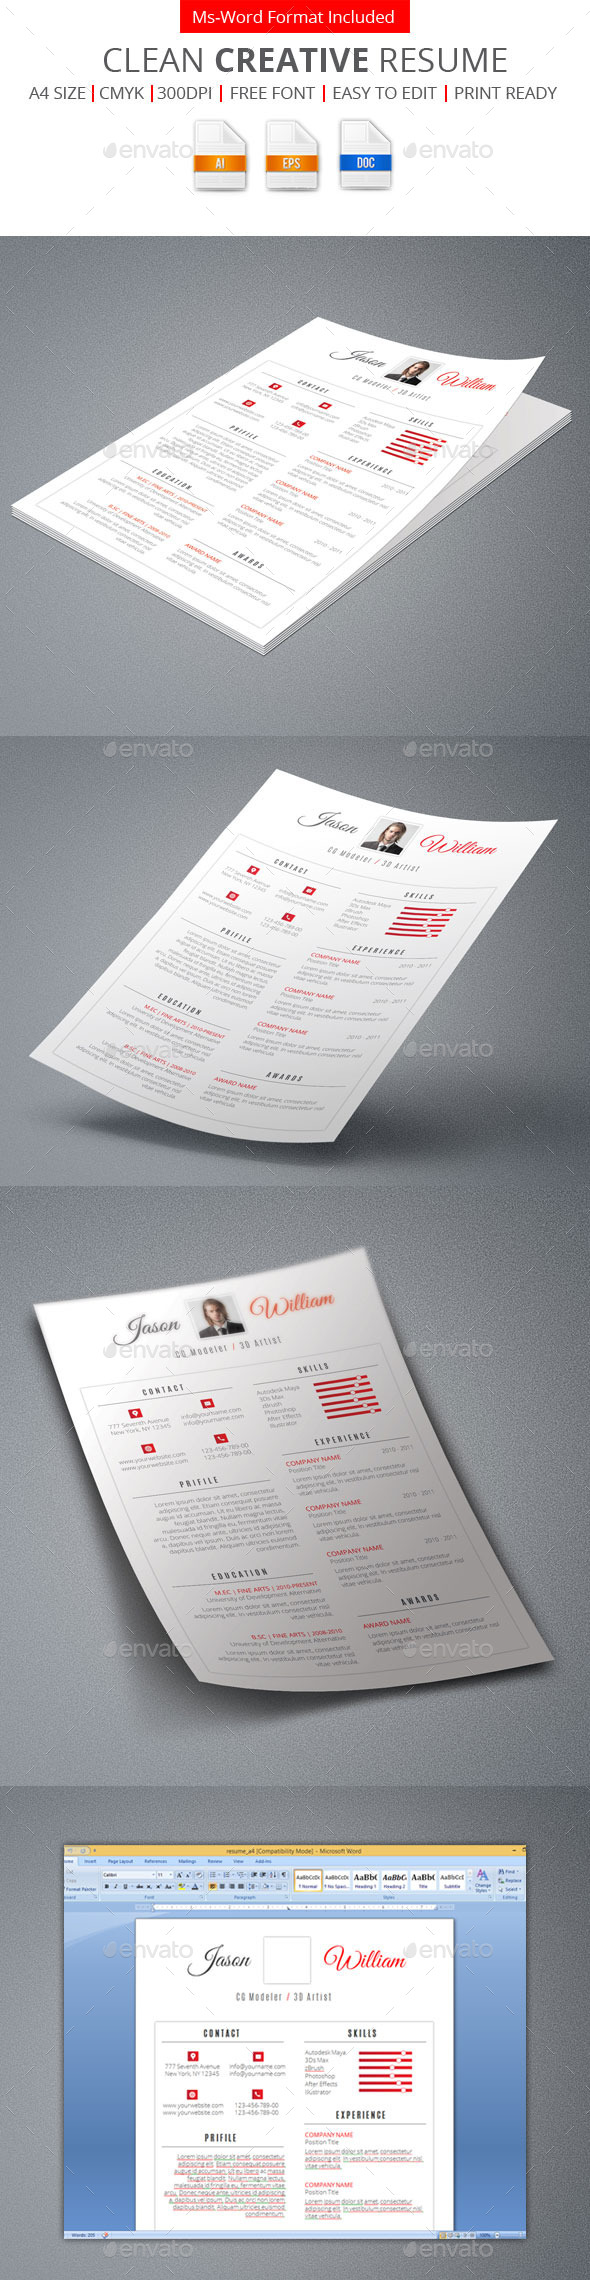 Clean Creative Resume